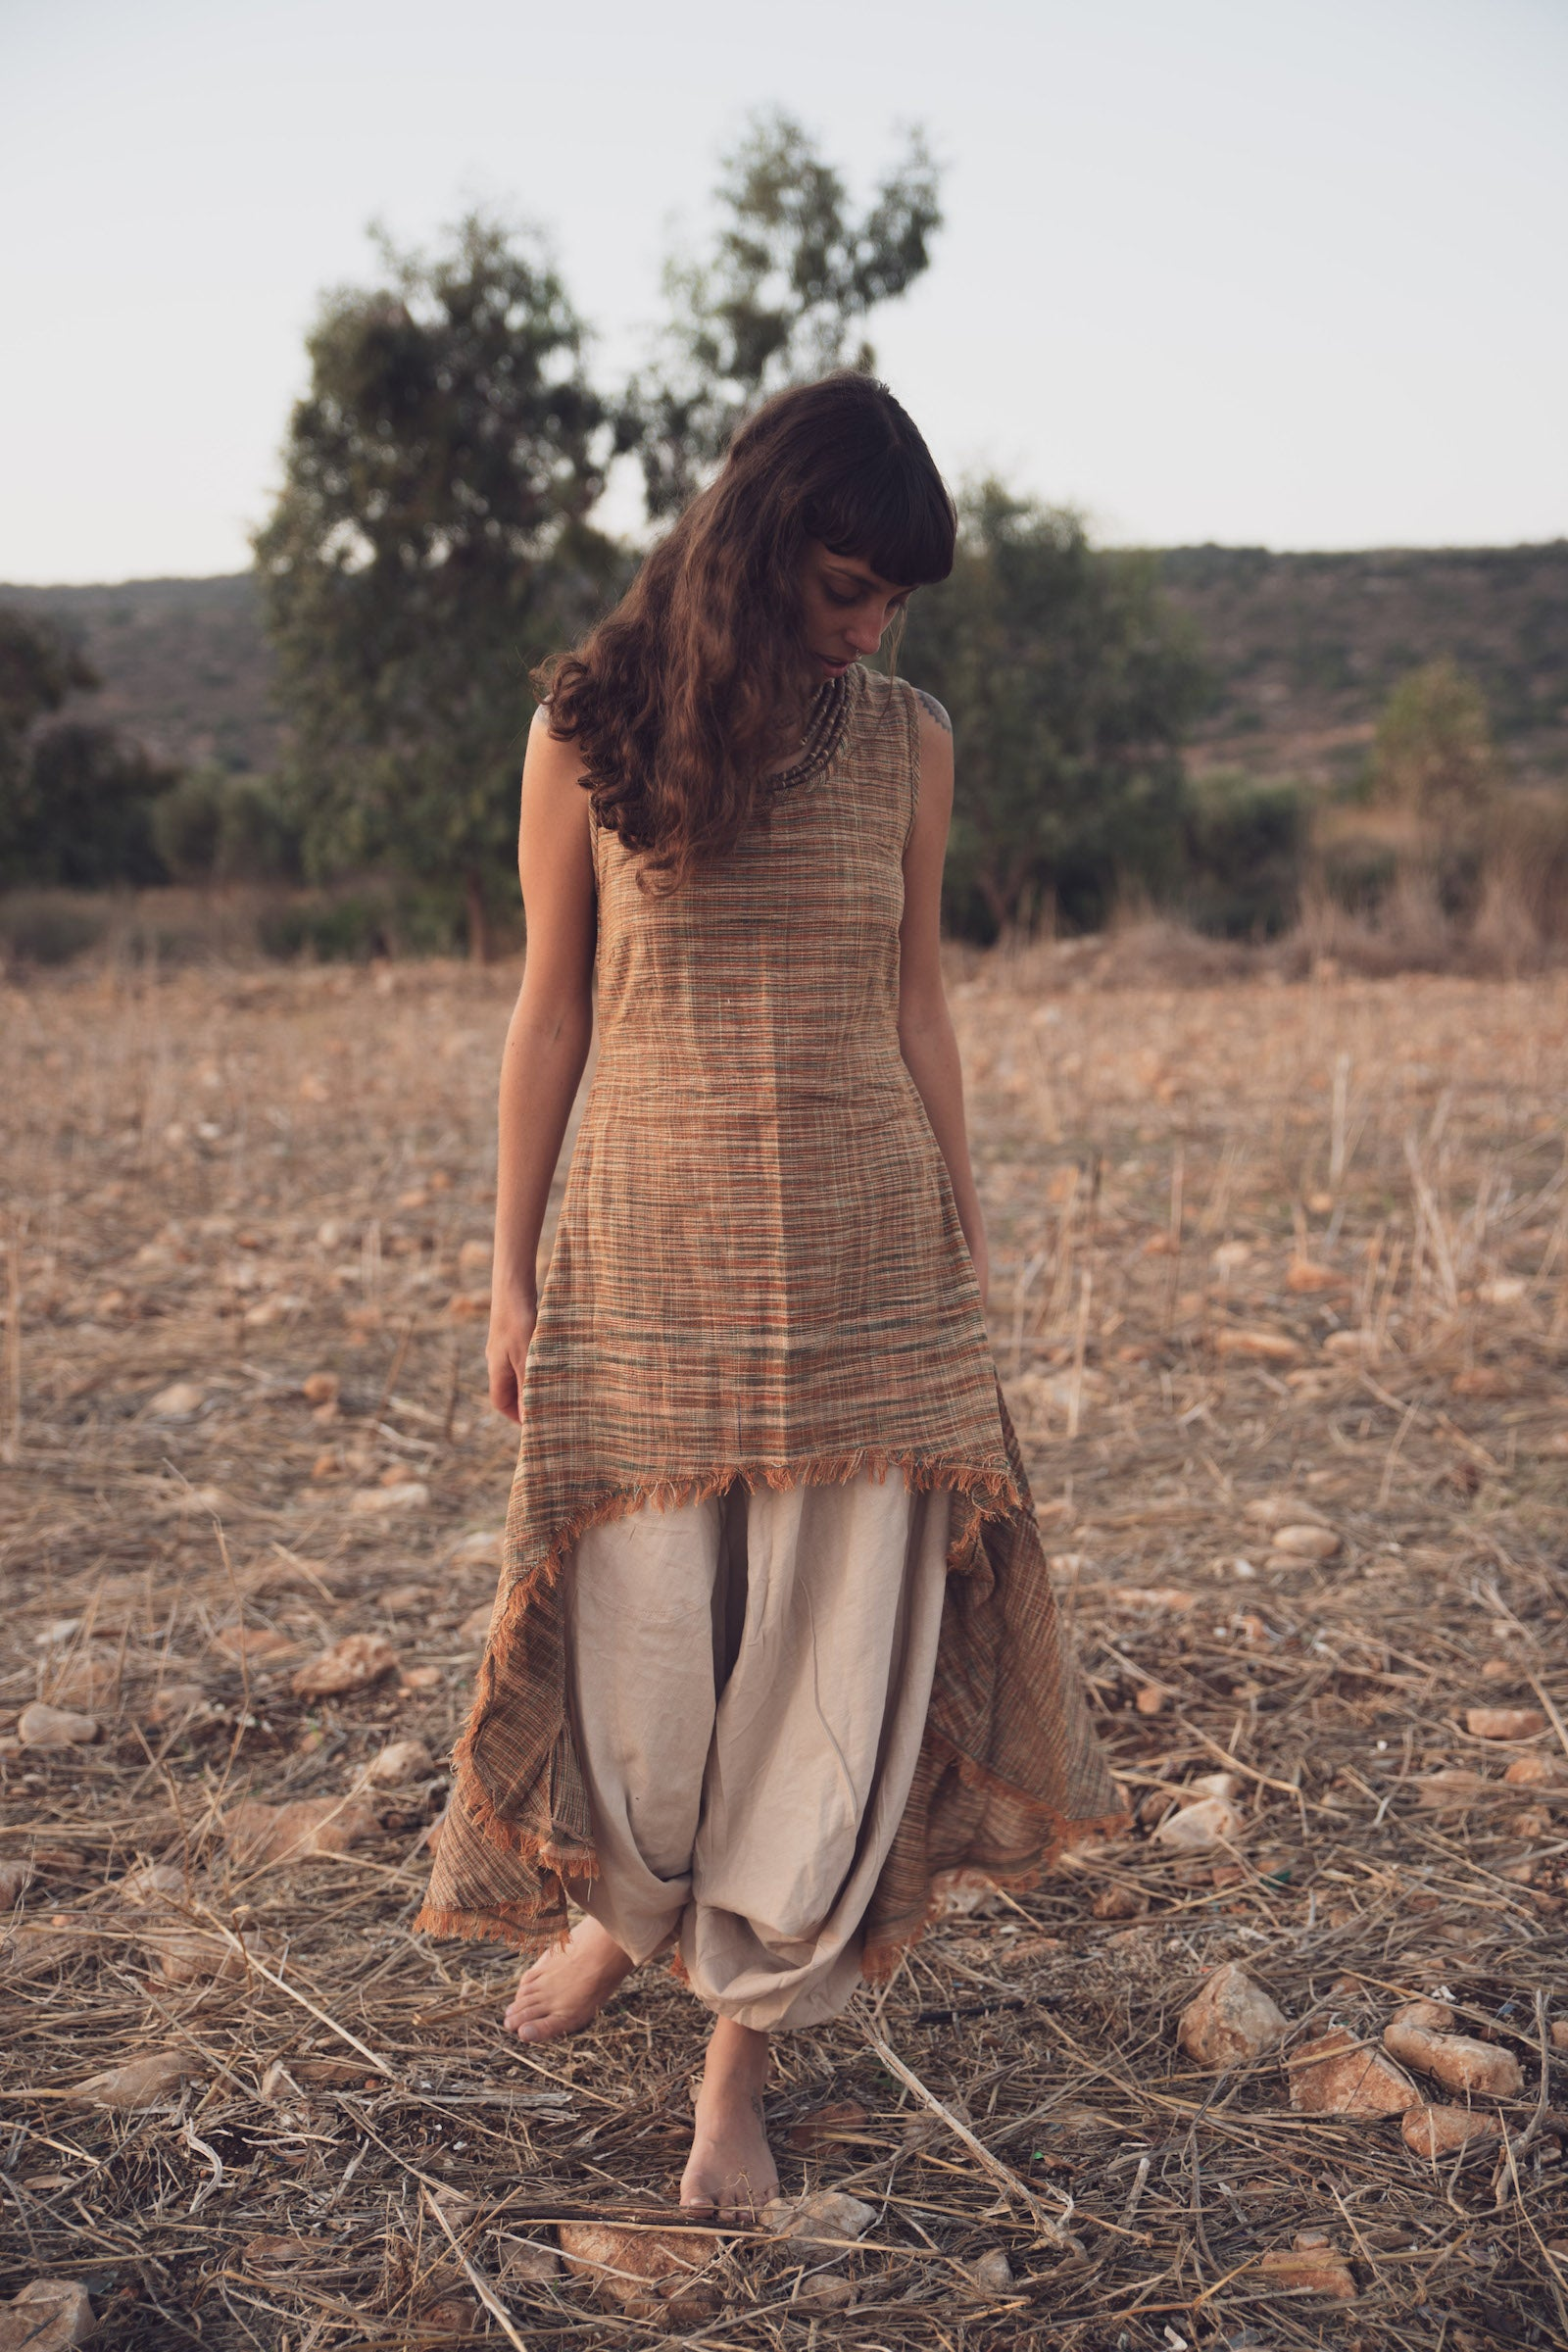 Asymmetrical Sleeveless Dress ⋙ Green Shades ⋙ Handwoven Khadi Cotton